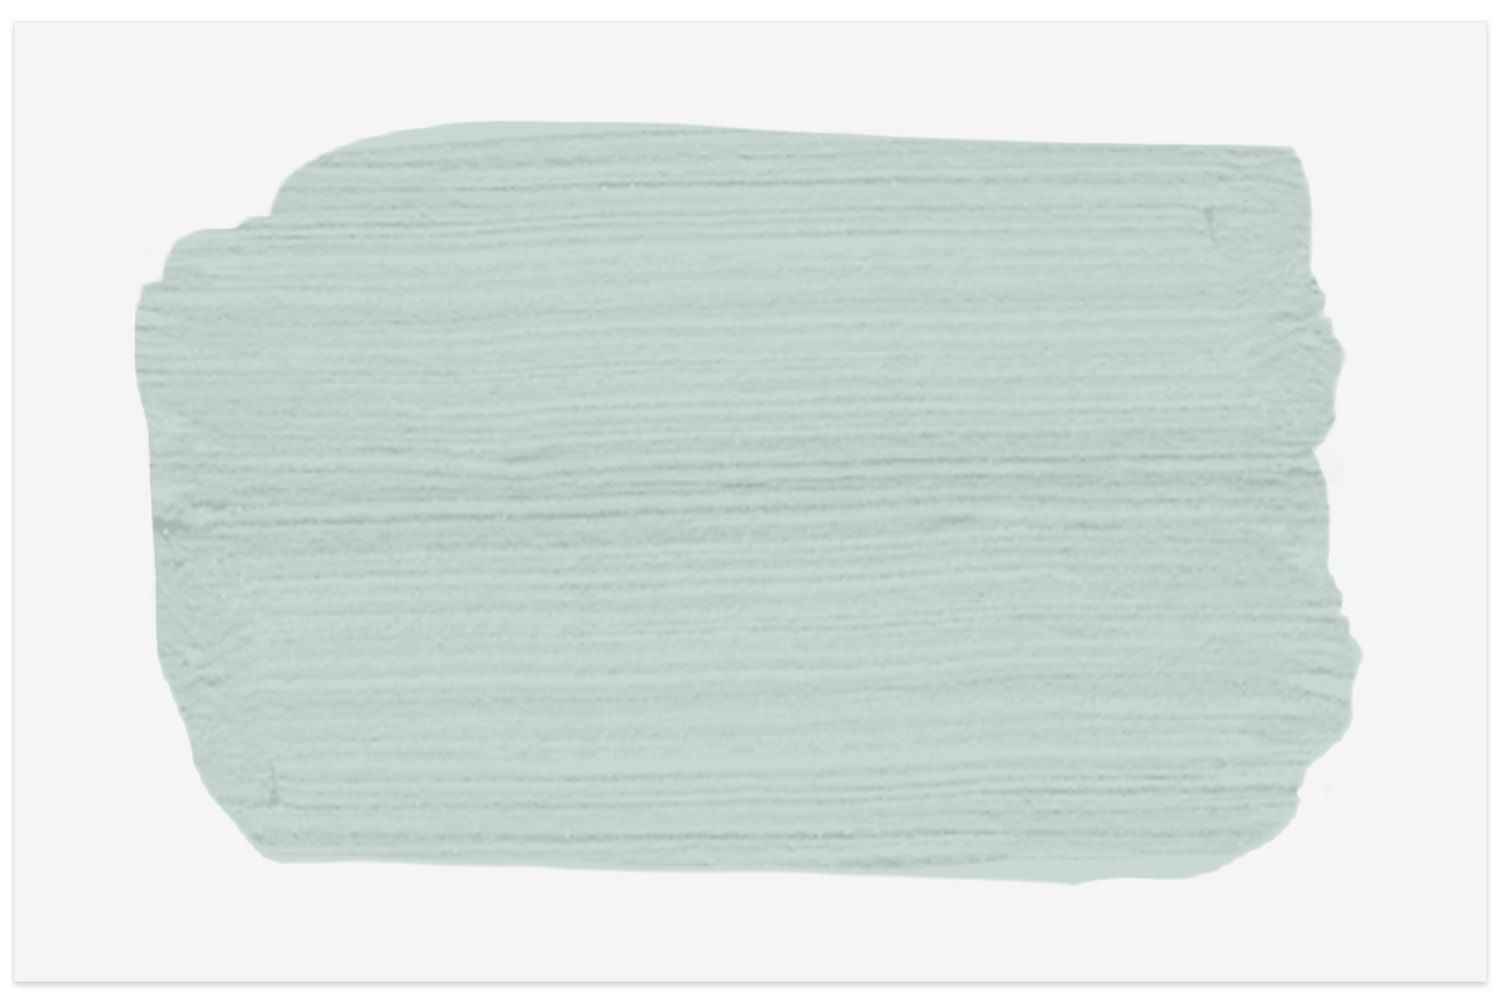 Distant Valley 5002-3A paint swatch from Valspar